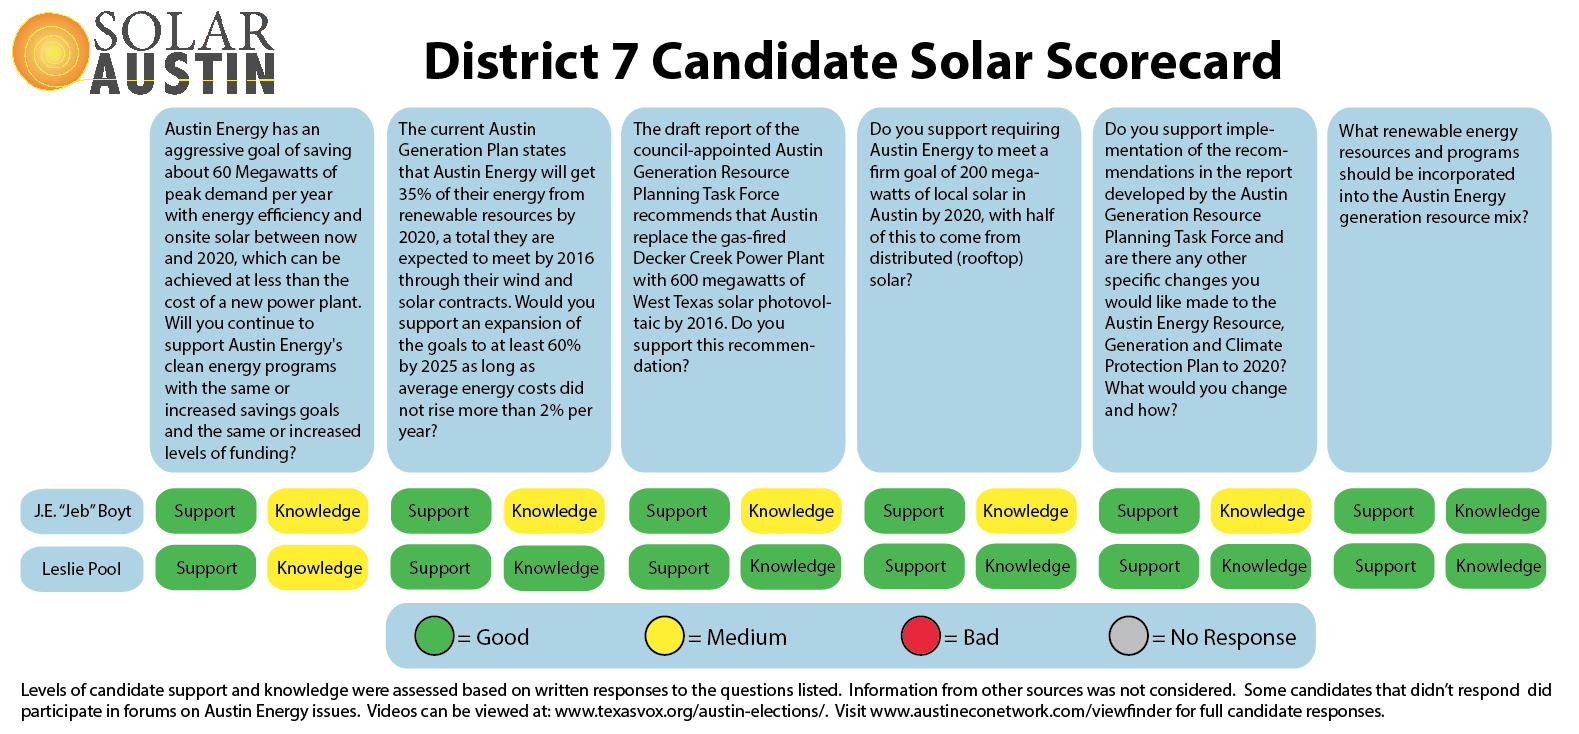 2014 Solar Austin Council District 7 Candidate Solar Scorecard - Runoffs